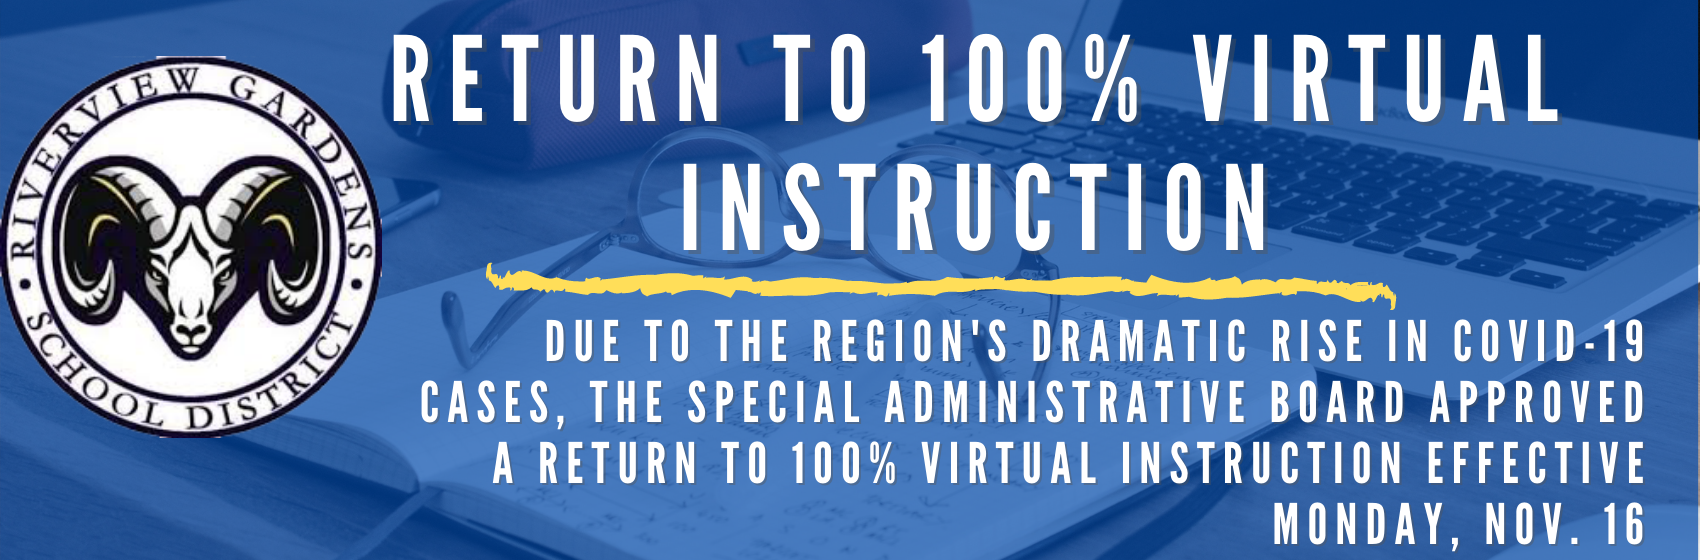 Return to 100% Virtual Instruction